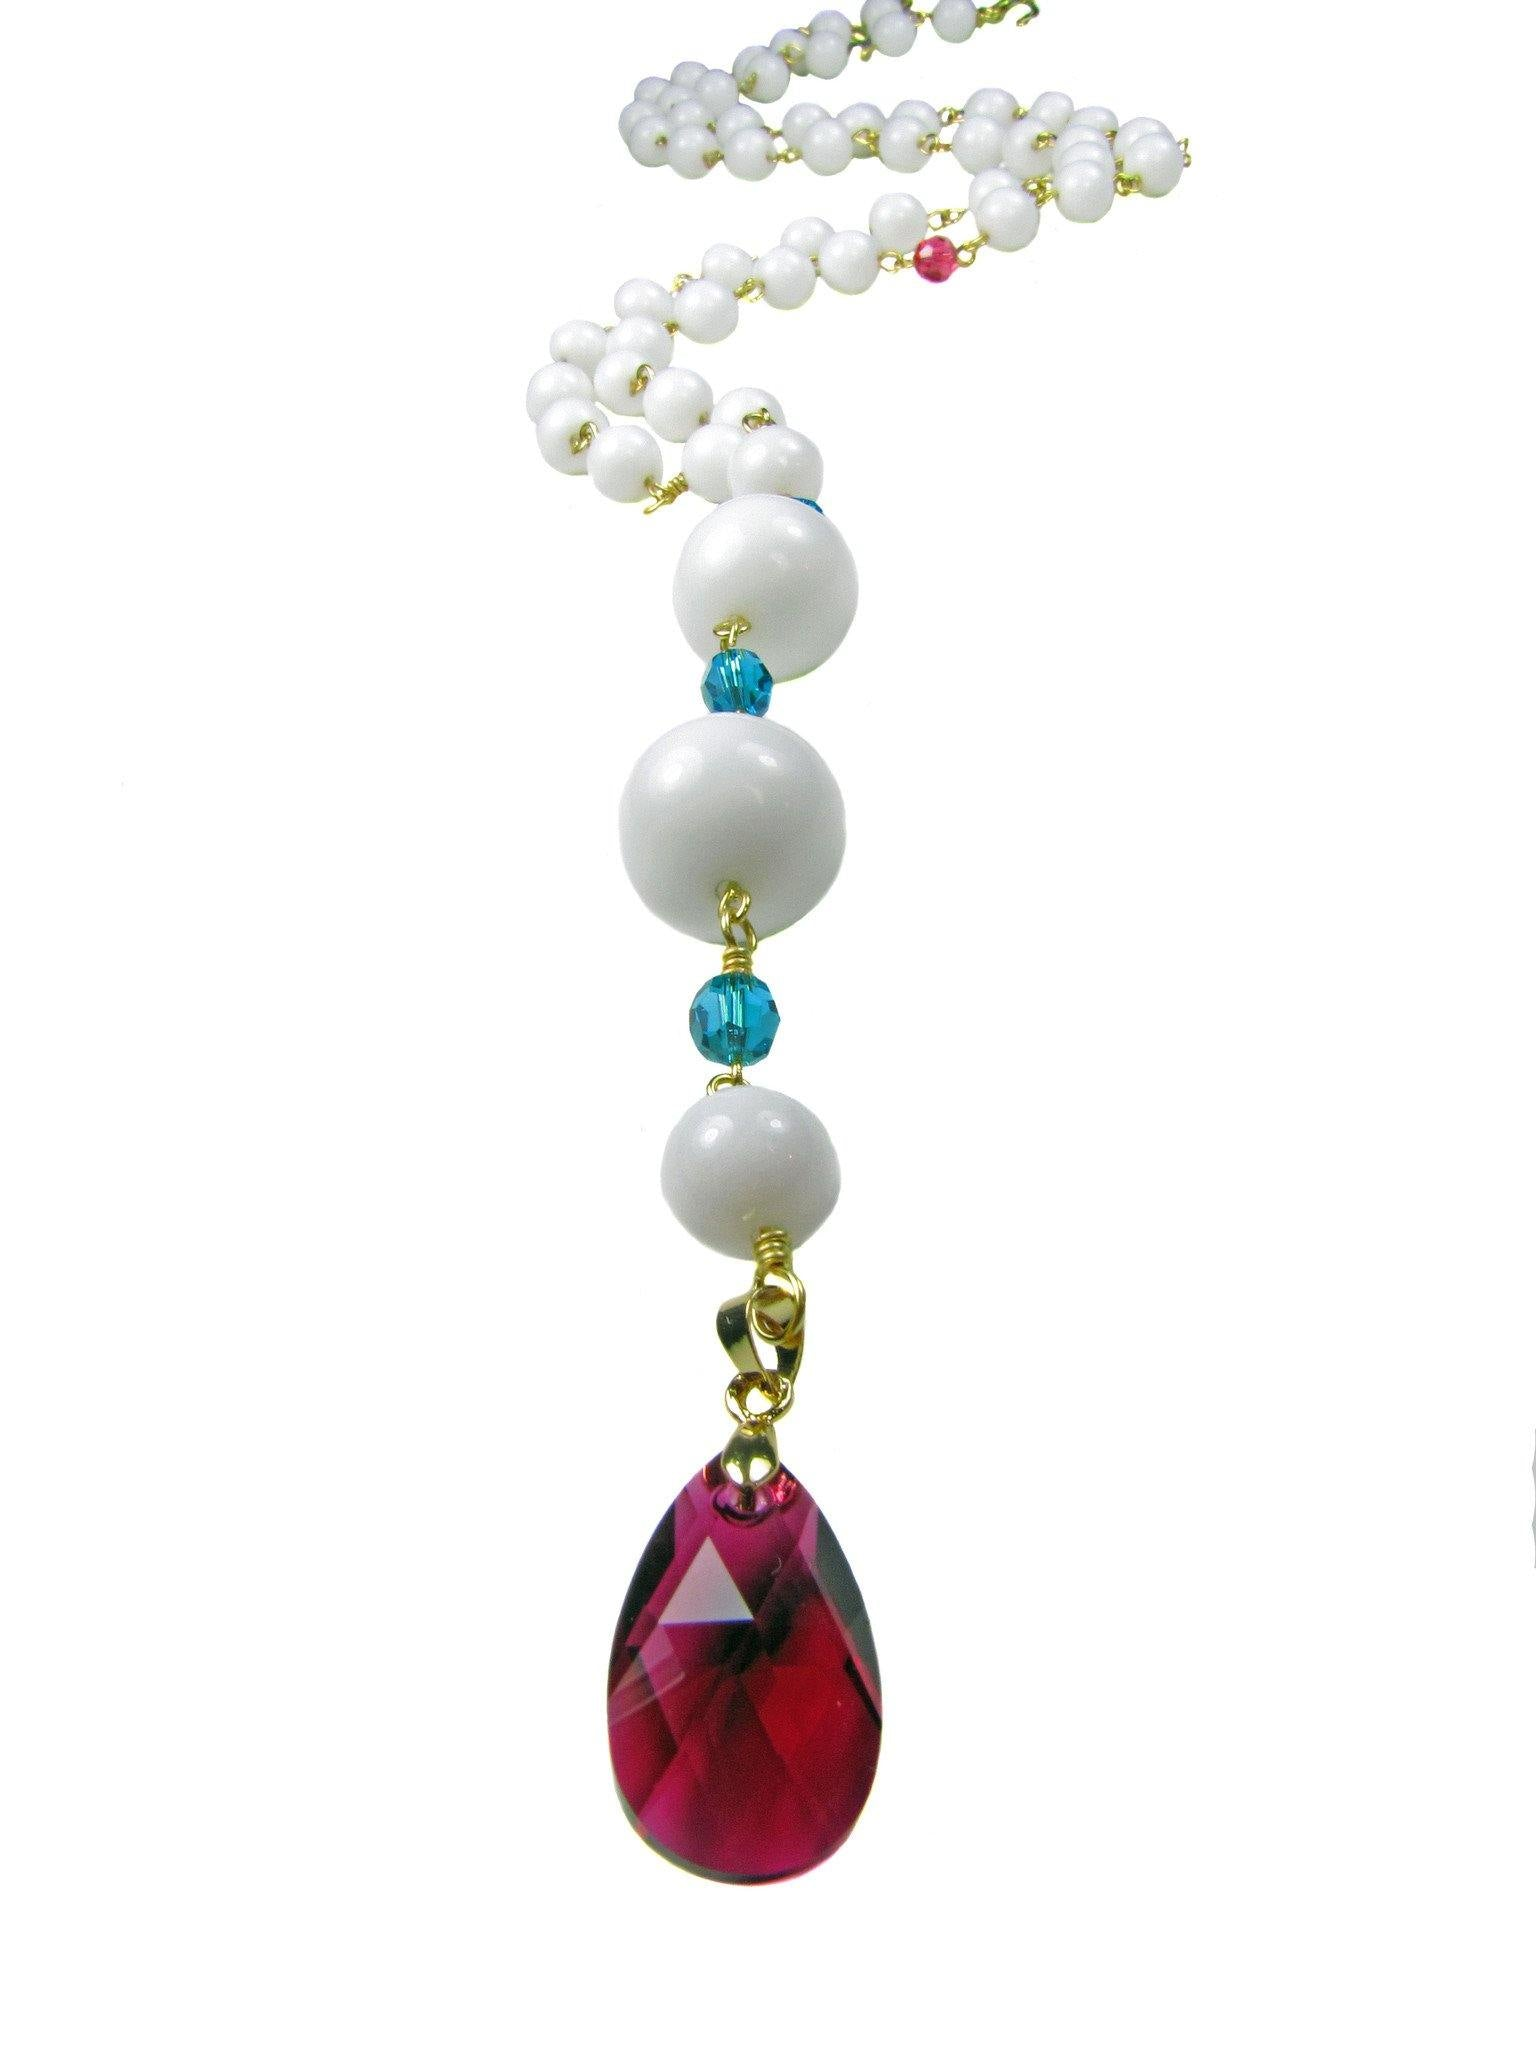 ELMA Necklace- Y white long Necklace with fuschia drop swarovski crystal - MARIA MOSS